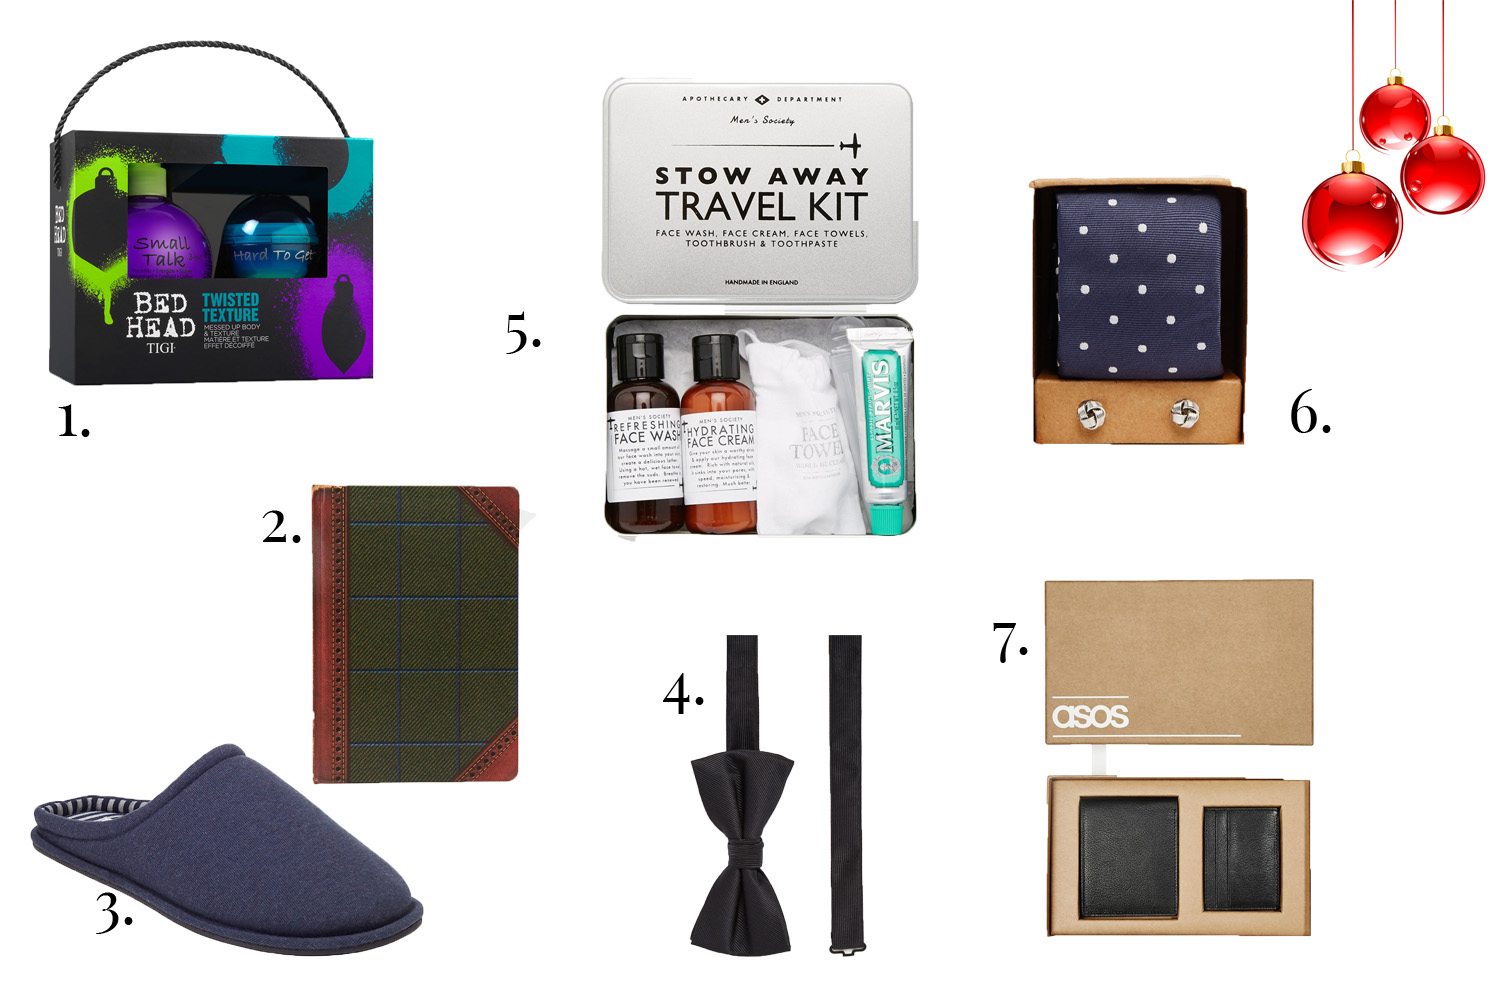 I Do Find Guys Harder To Gifts For But Not Impossible These Are Some Ideas Of Things Under The 20 Mark That You Might Want Look Into